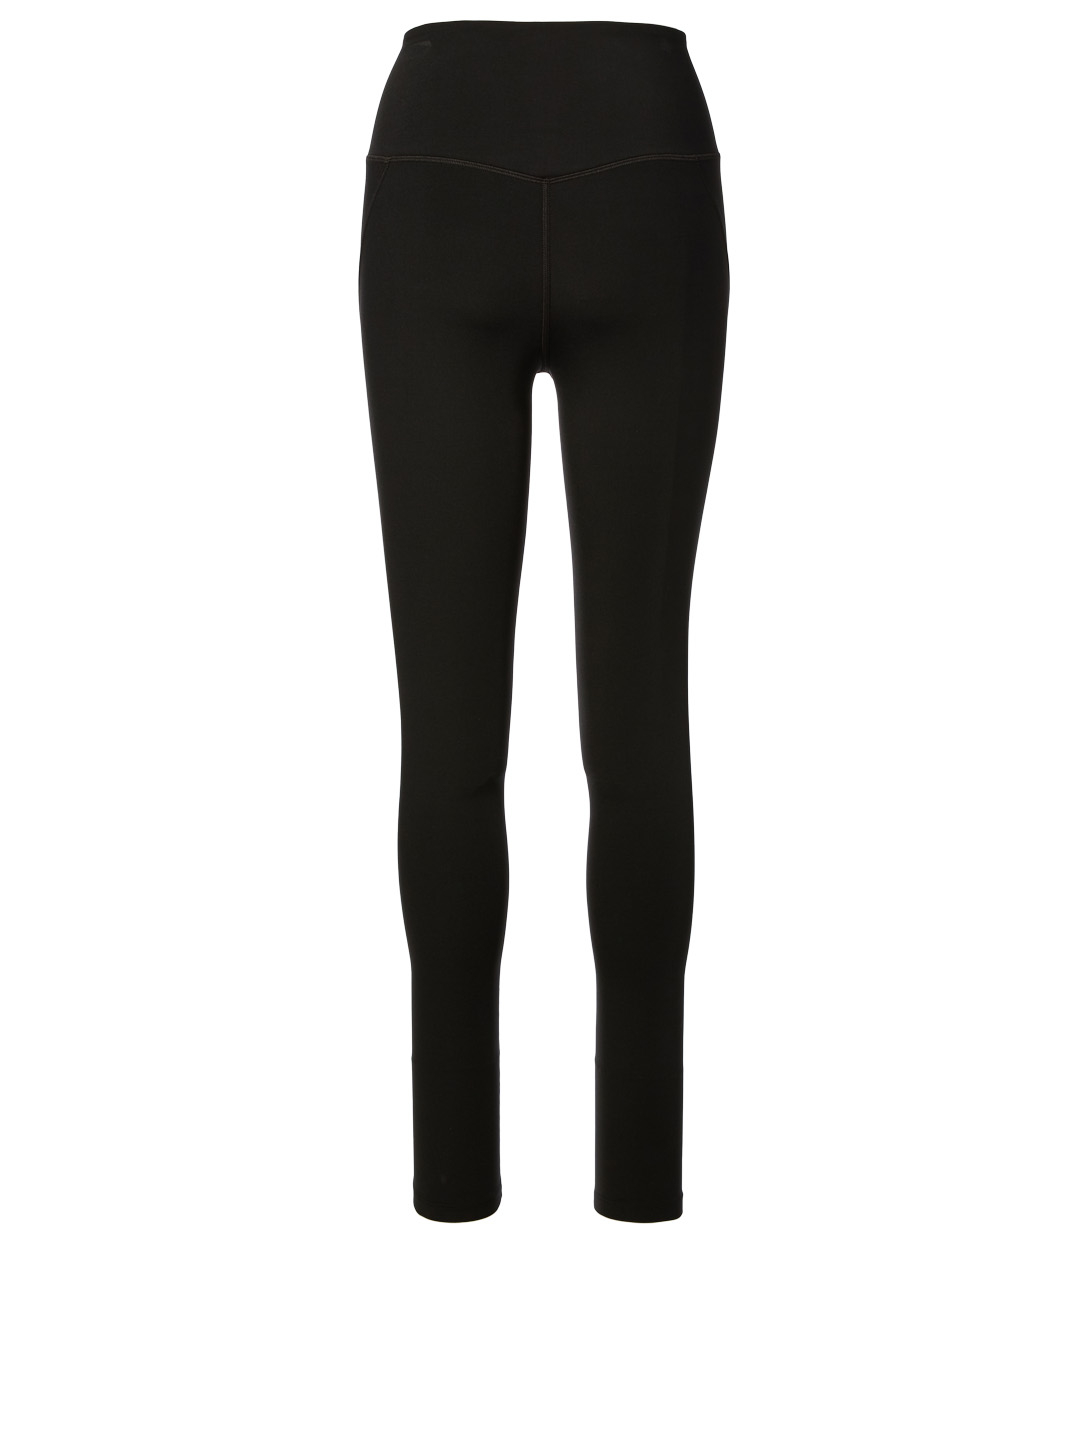 GIRLFRIEND COLLECTIVE Lite High-Rise Legging H Project Black